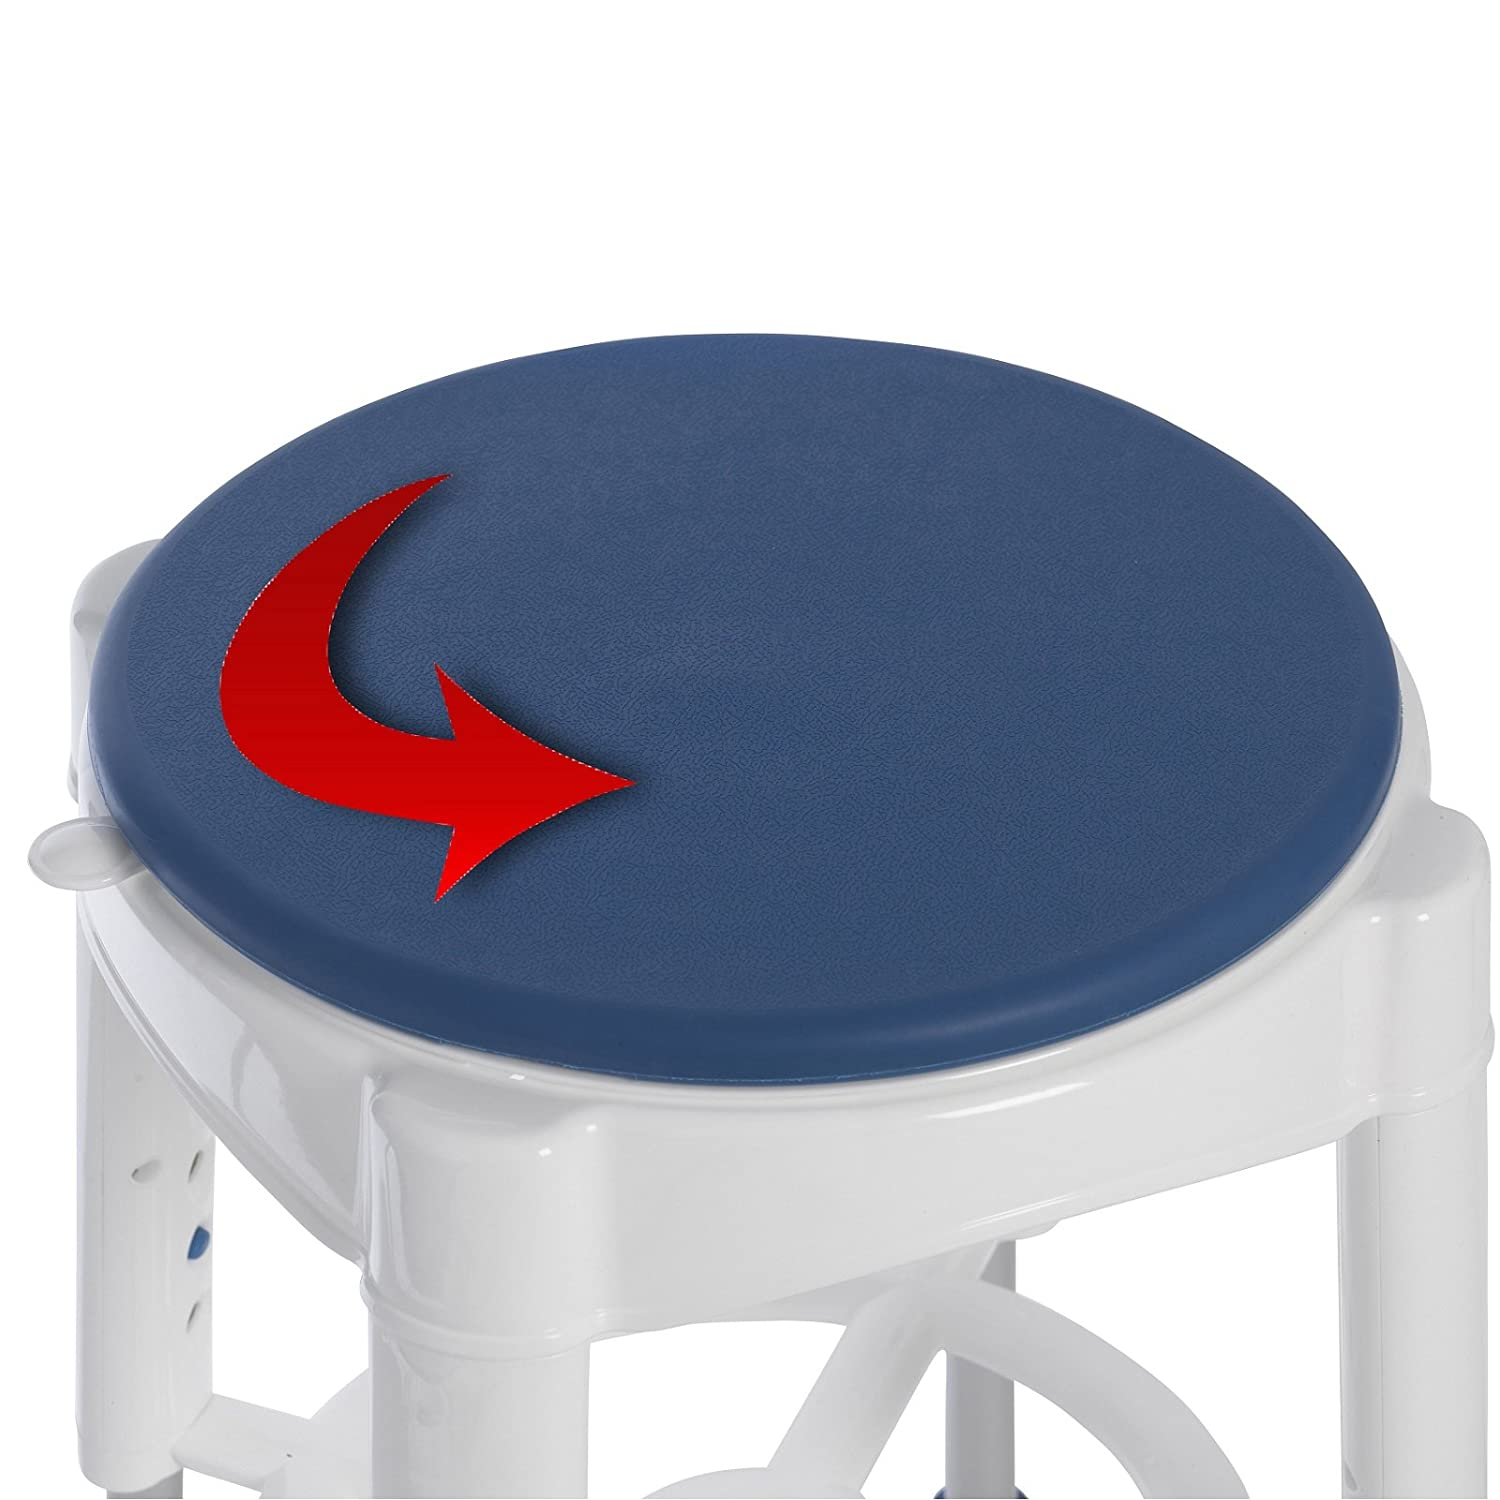 Round Shower & Bath Stool, With Rotating Seat - Height Adjustable ...